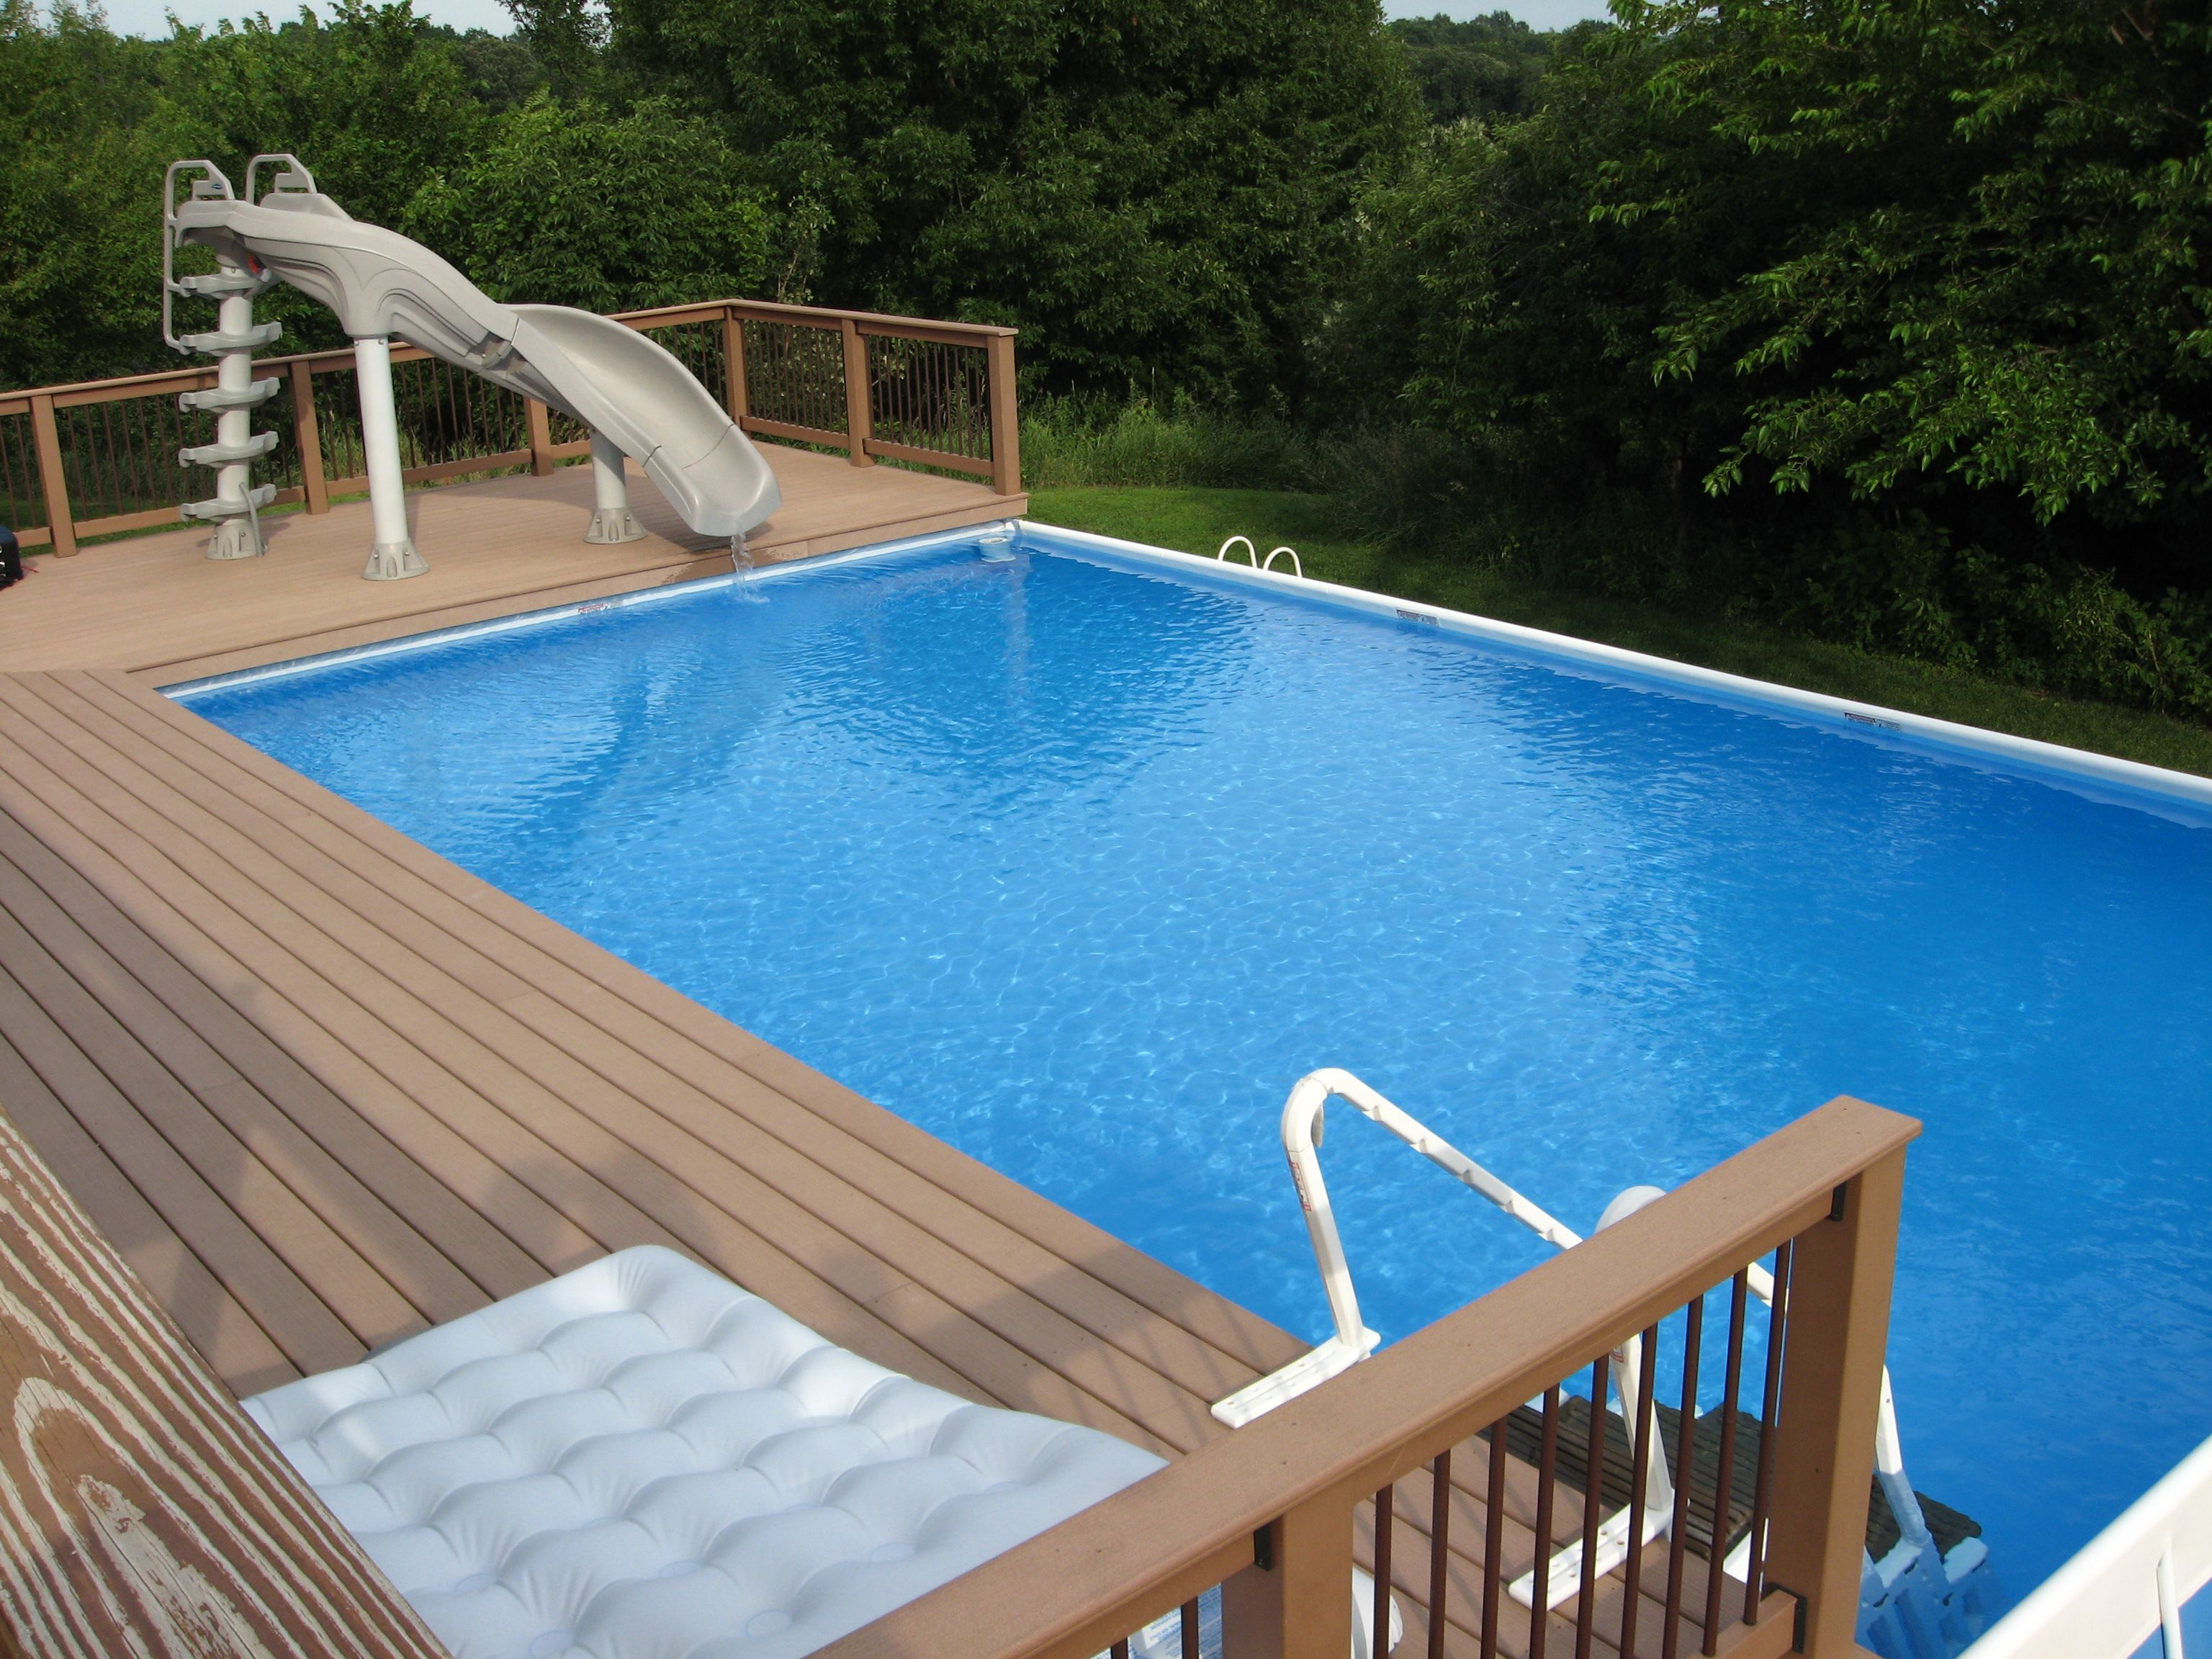 Above Ground Swimming Pool Deck Designs impressive above ground pools deck designs Above Ground Pool Decks Idea For Your Backyard Decor Beautiful Above Ground Pool Custom Decks